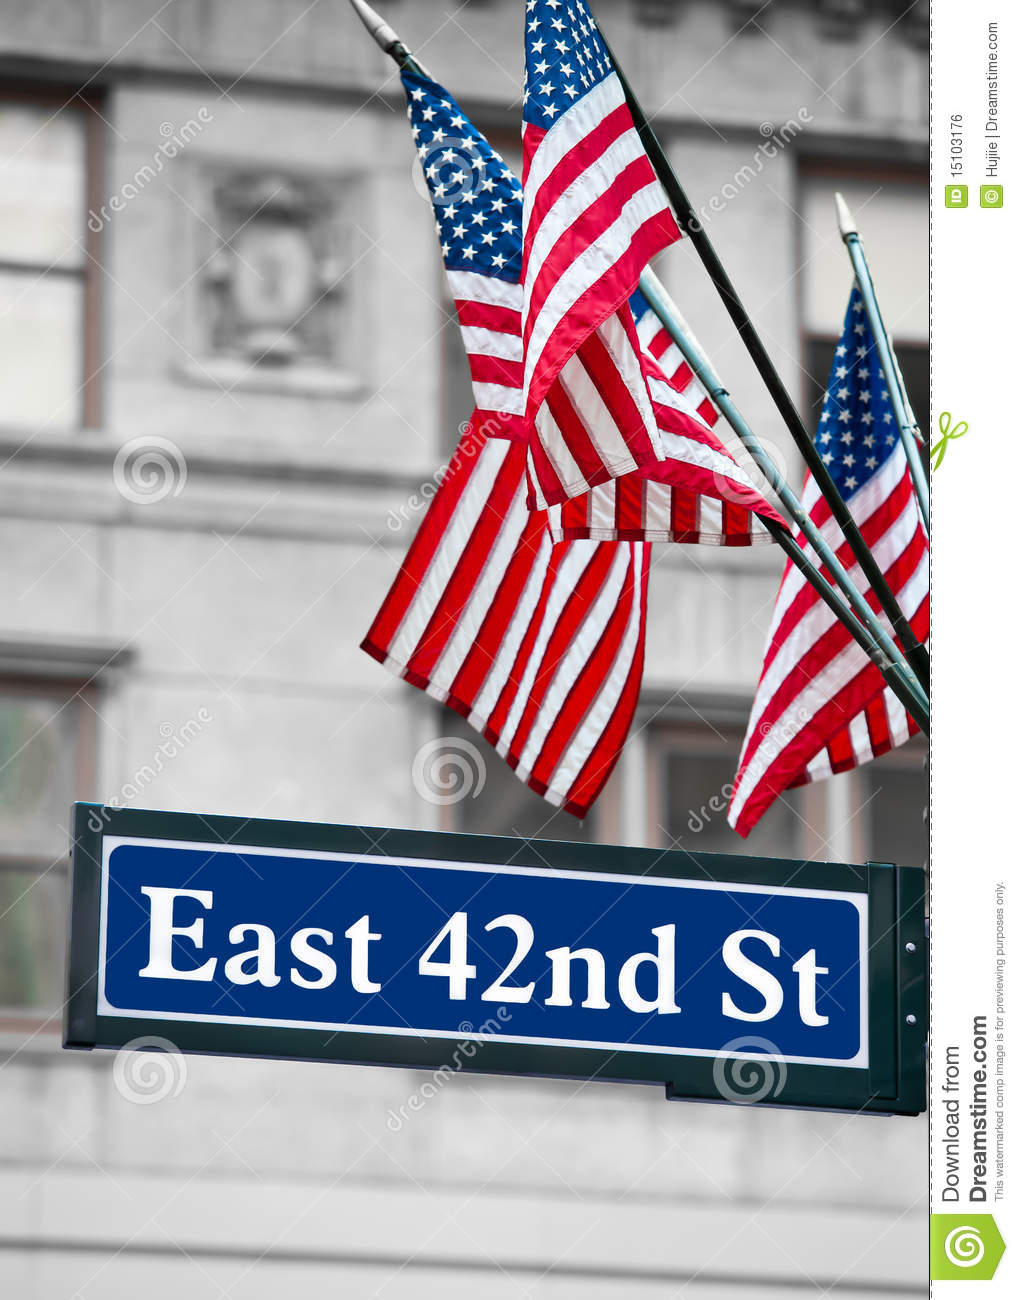 East 42nd Street Signs And US Flag Royalty Free Stock ...